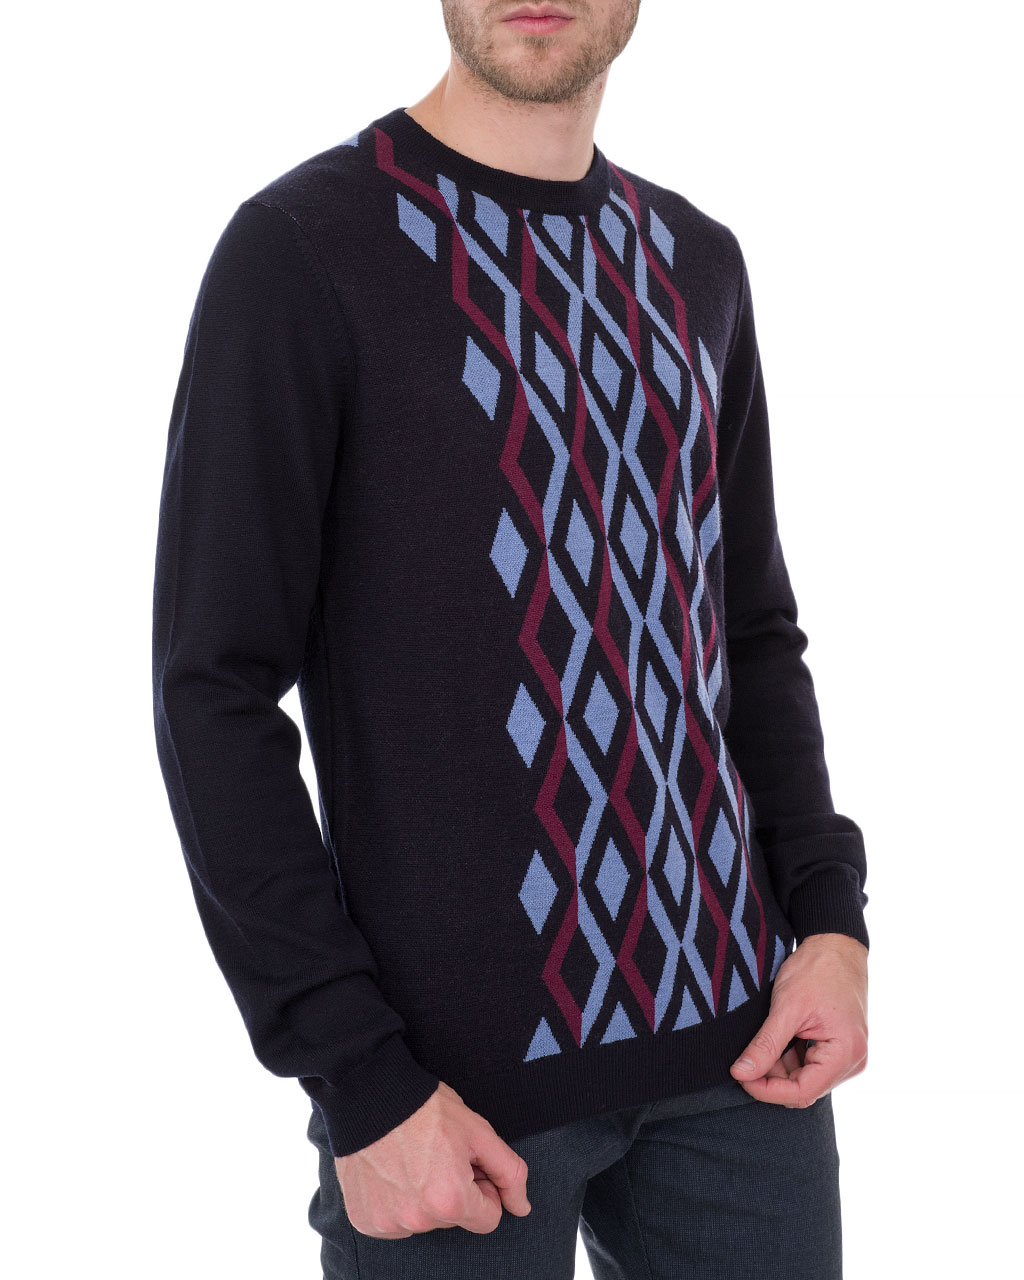 Men's jumper 1855-319/19-20 (3)